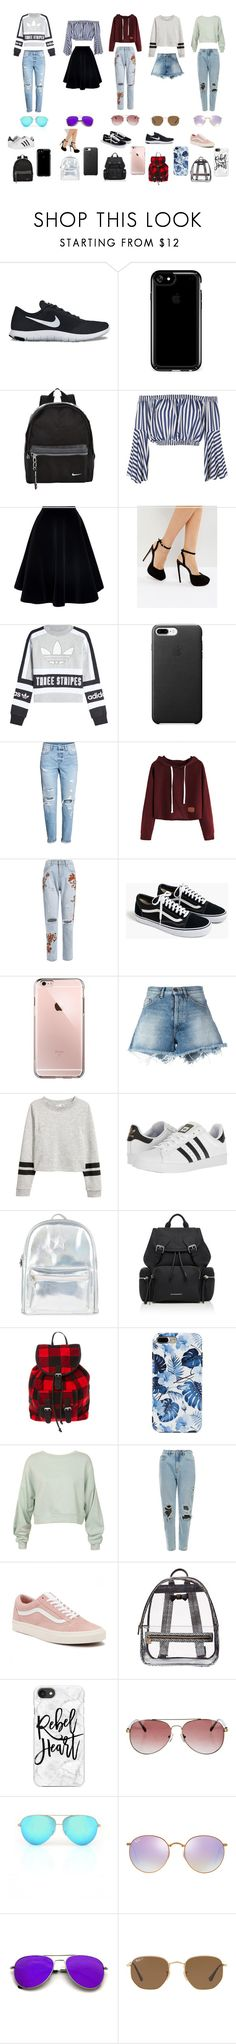 """BBMOD"" by kxjae on Polyvore featuring NIKE, Speck, Love, N°21, ASOS, adidas Originals, H&M, J.Crew, Off-White and adidas"